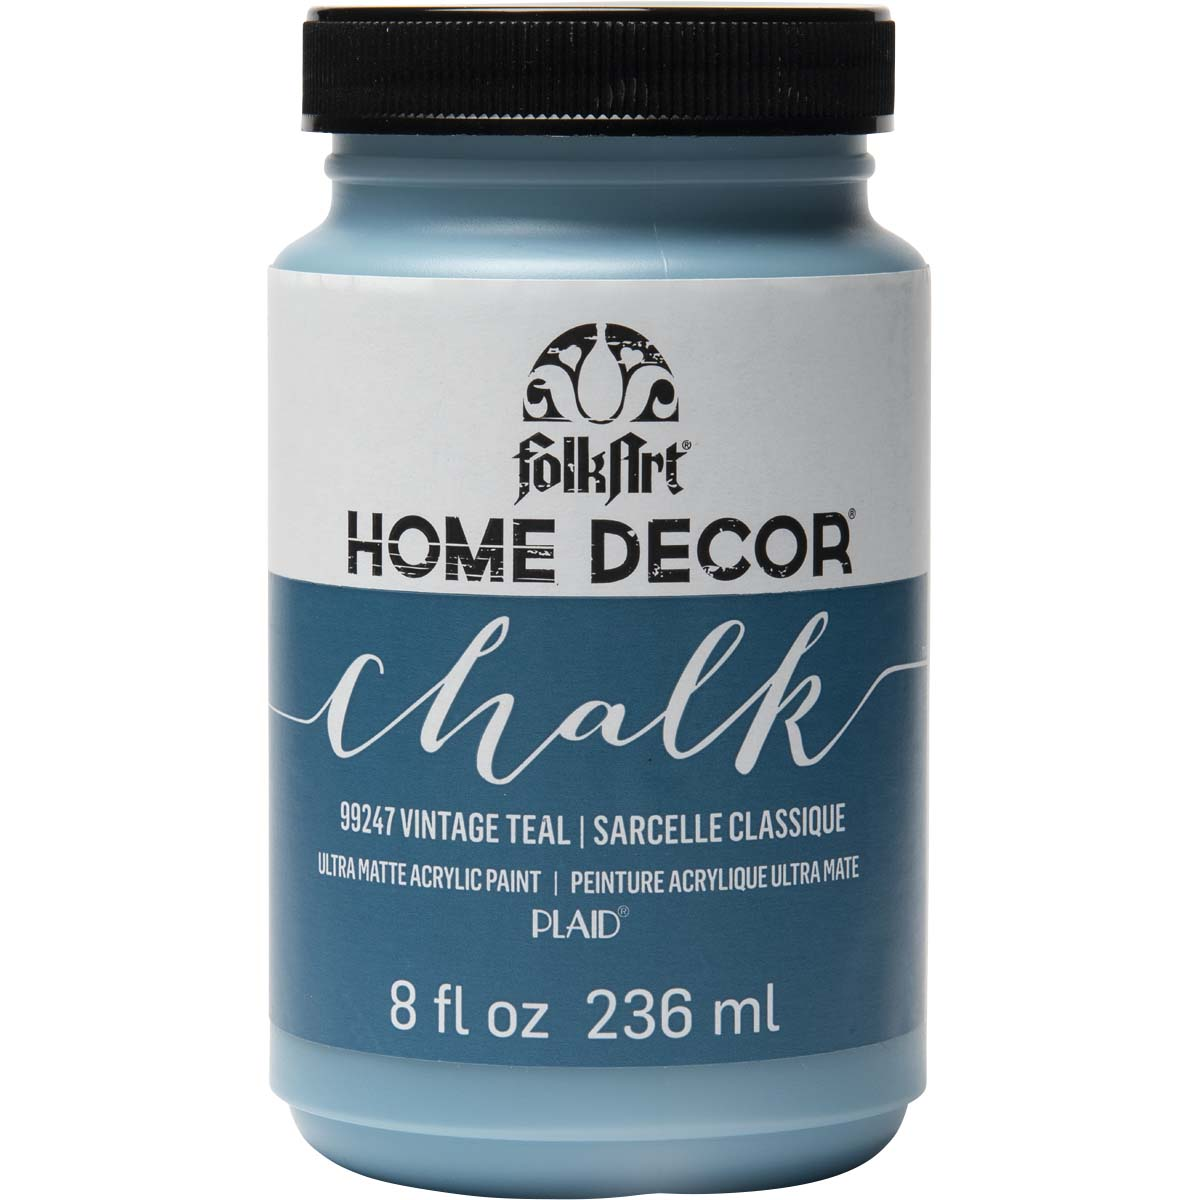 FolkArt ® Home Decor™ Chalk - Vintage Teal, 8 oz.